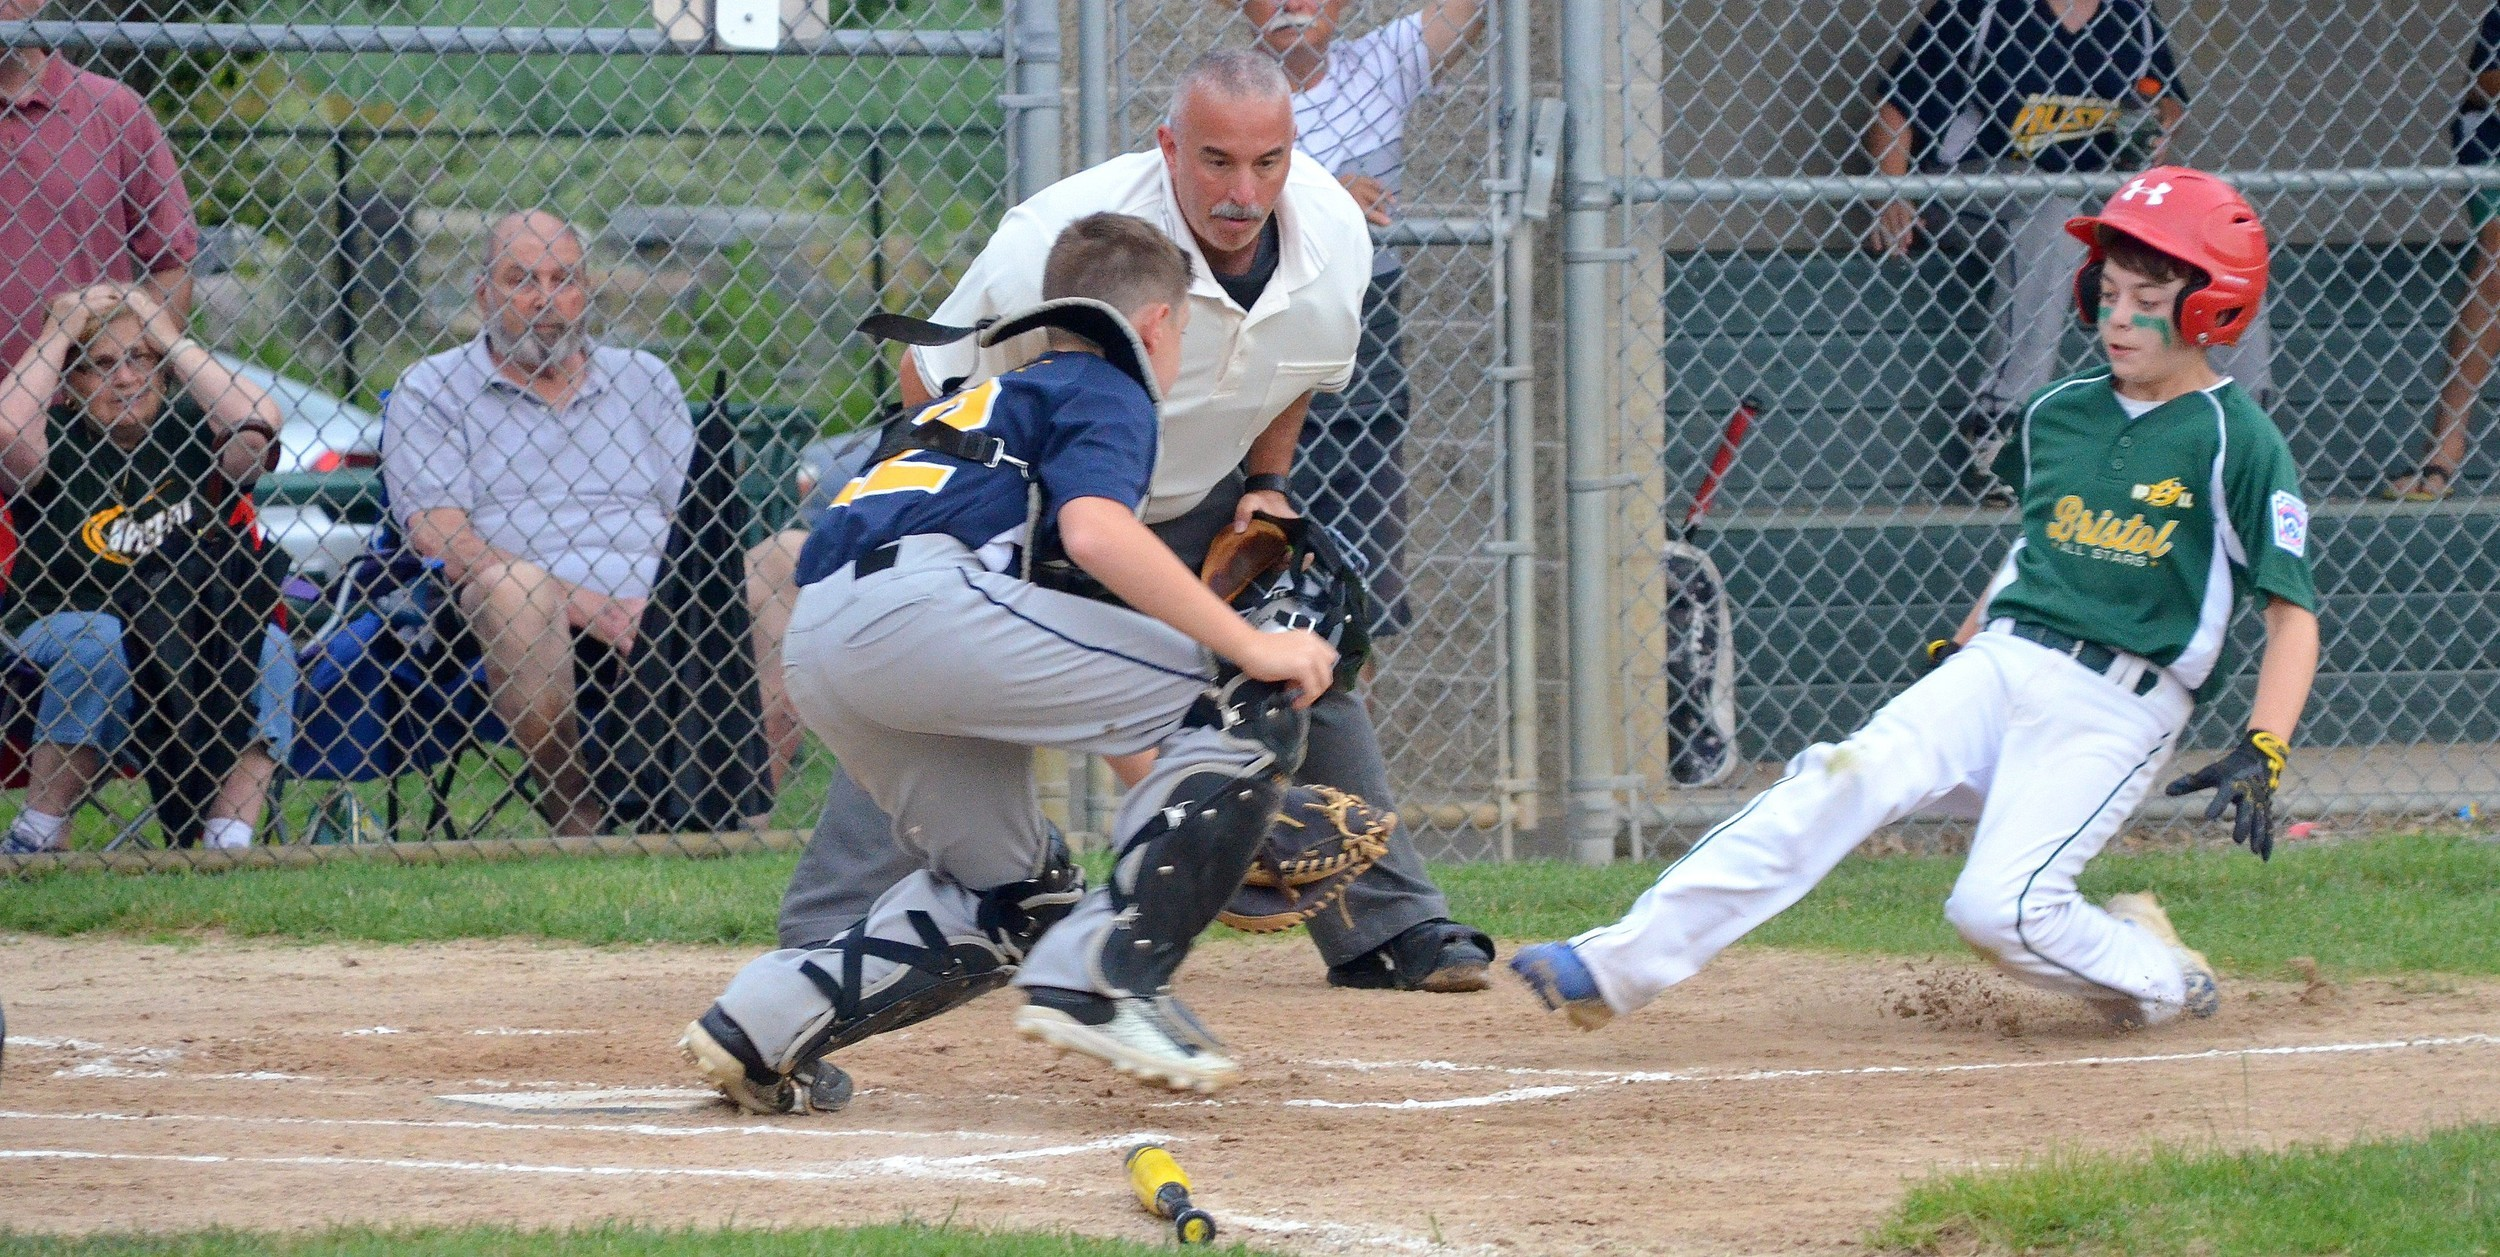 Barrington catcher Andrew La Pointe gets set to put the tag on Bristol baserunner at home plate.